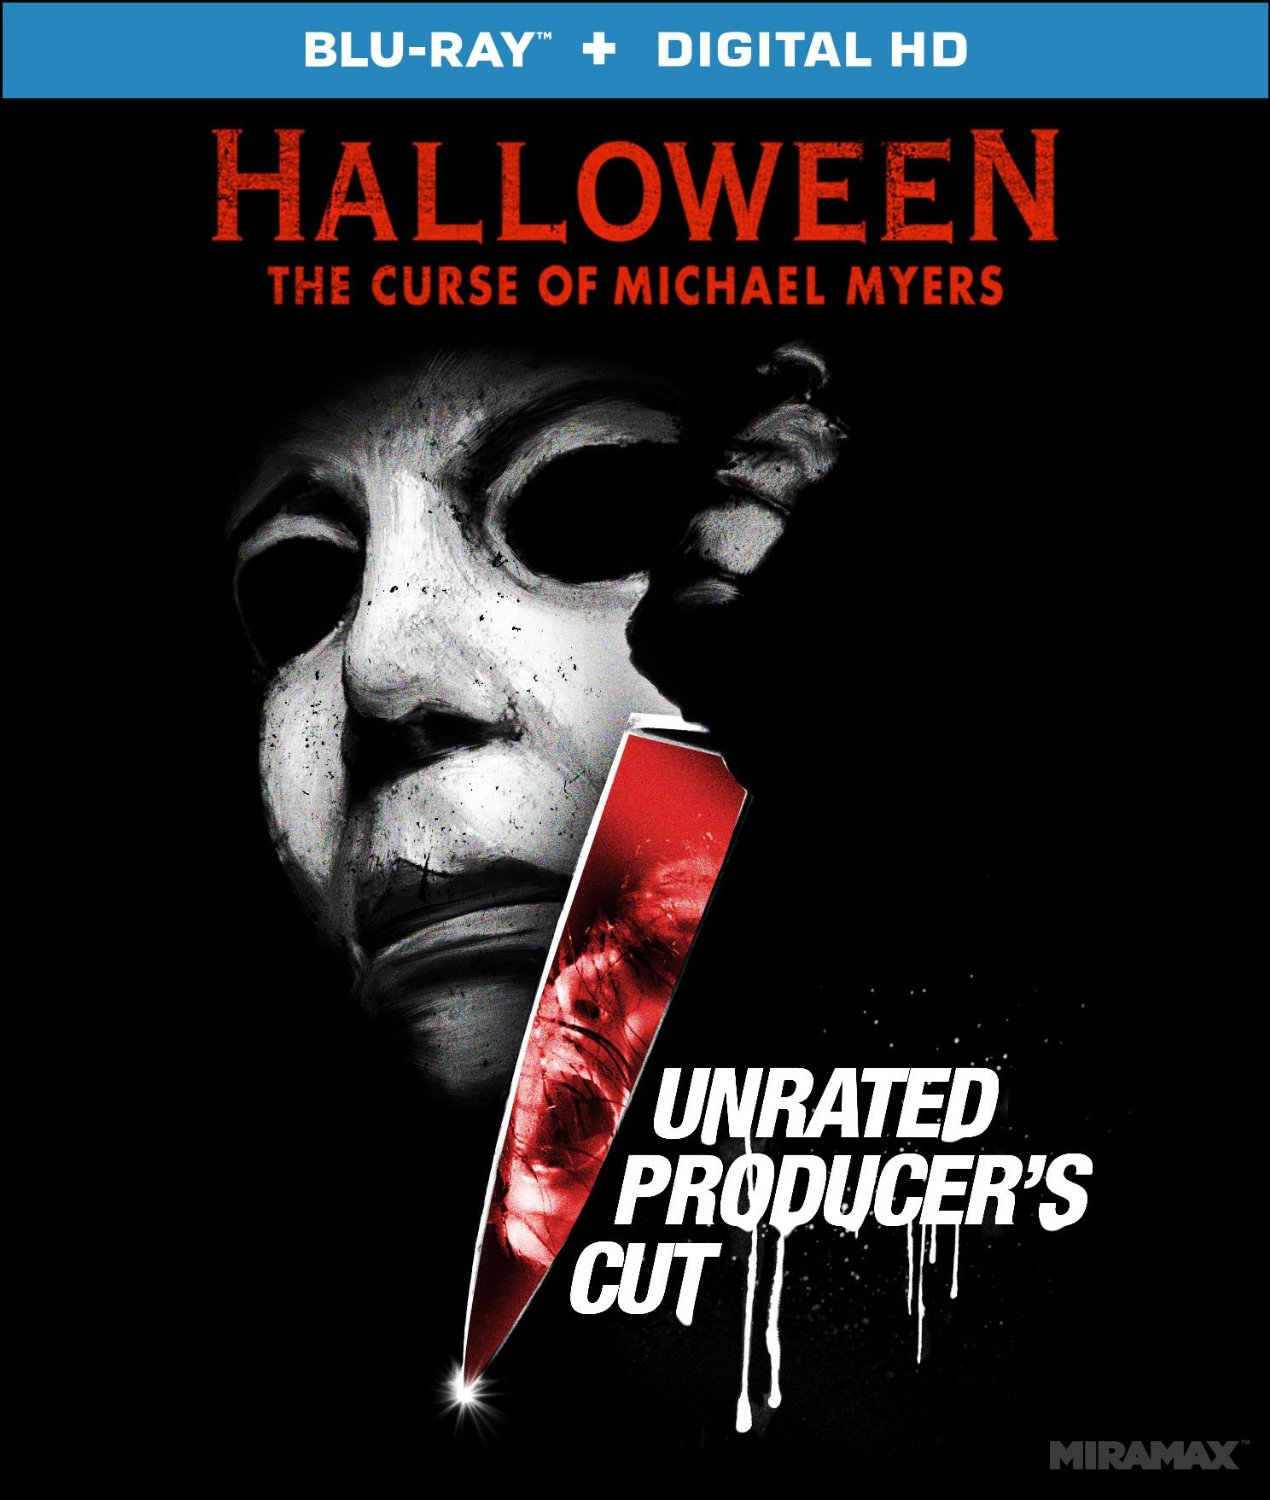 halloween 6' producer's cut standalone blu-ray coming in september